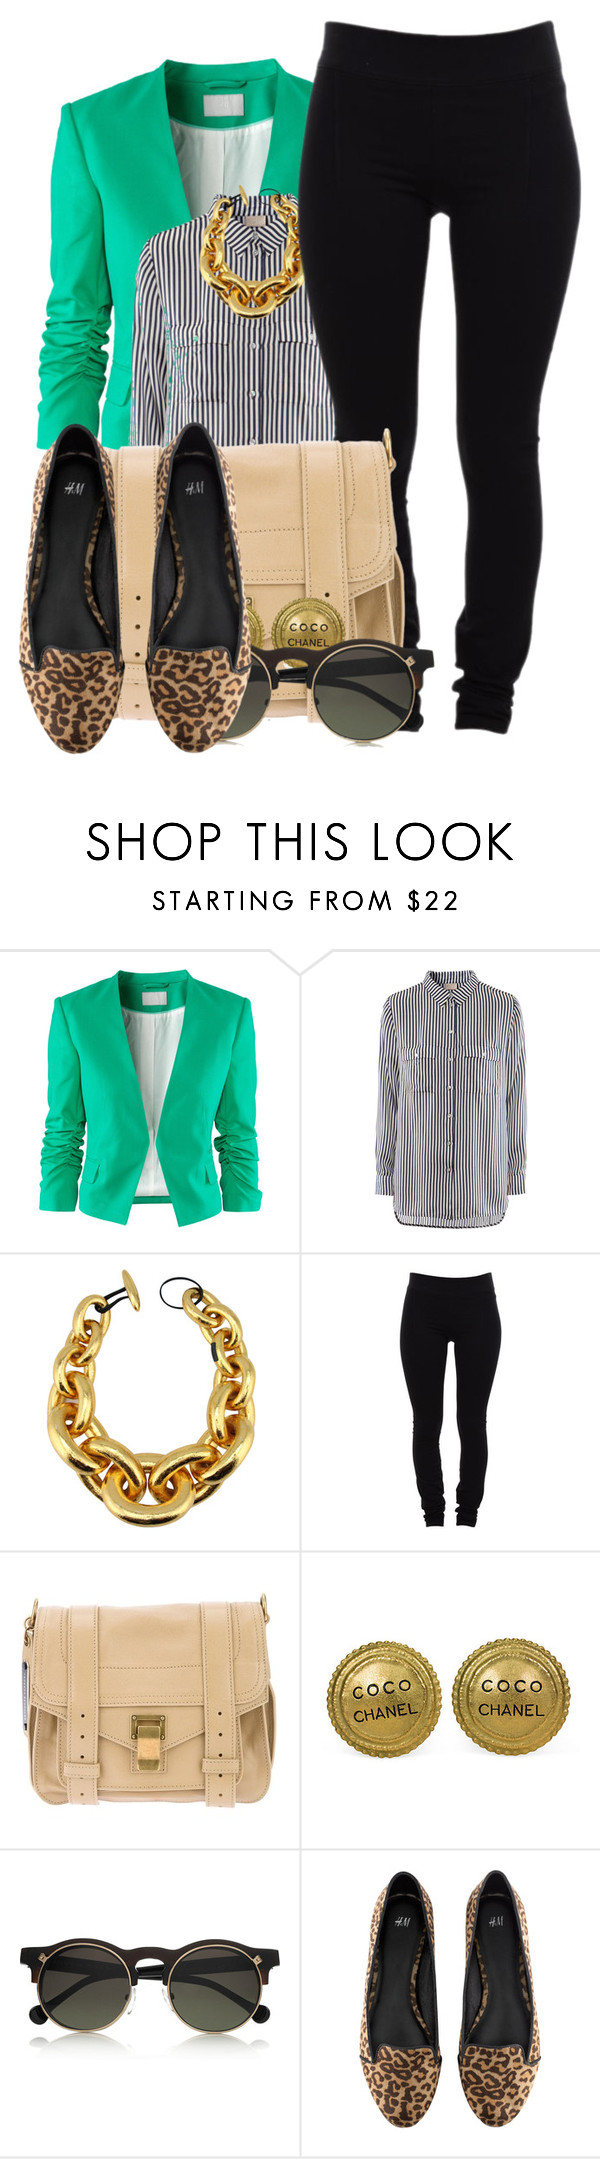 """""""CoCo Chanel."""" by theqveen ❤ liked on Polyvore featuring H&M, Monies, Helmut Lang, Proenza Schouler, Chanel and Carven"""